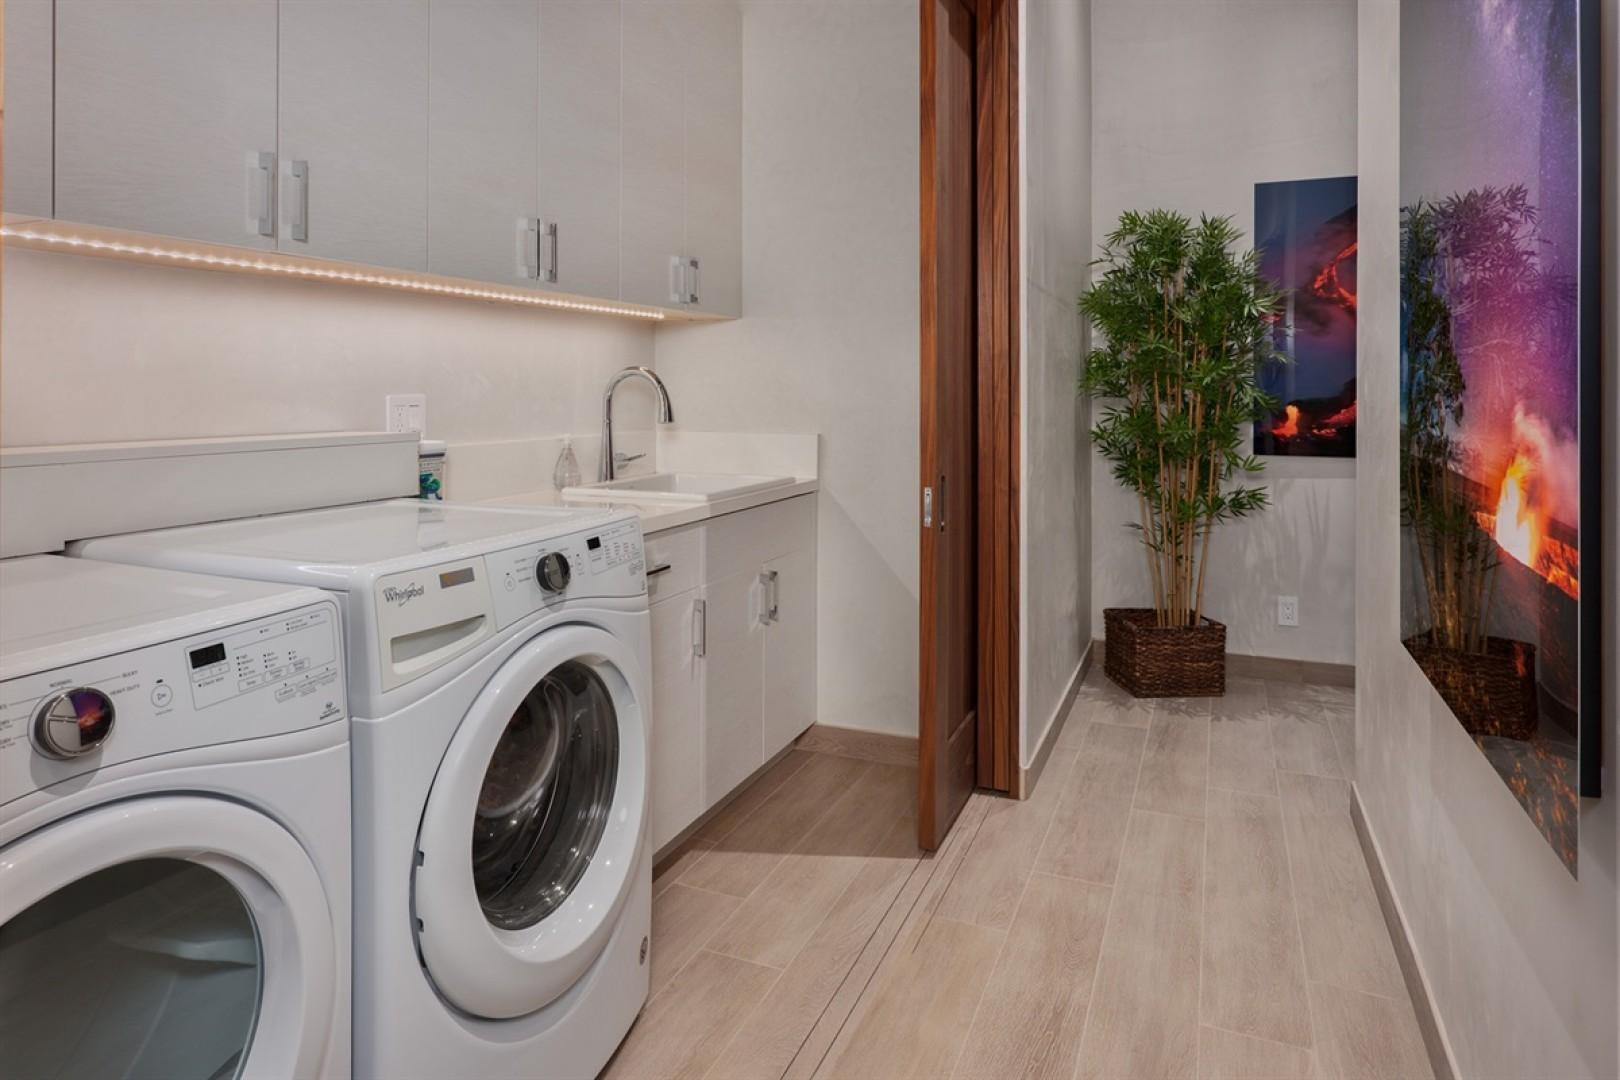 Dedicated laundry area inside the home with oversized washer and dryer and sink.